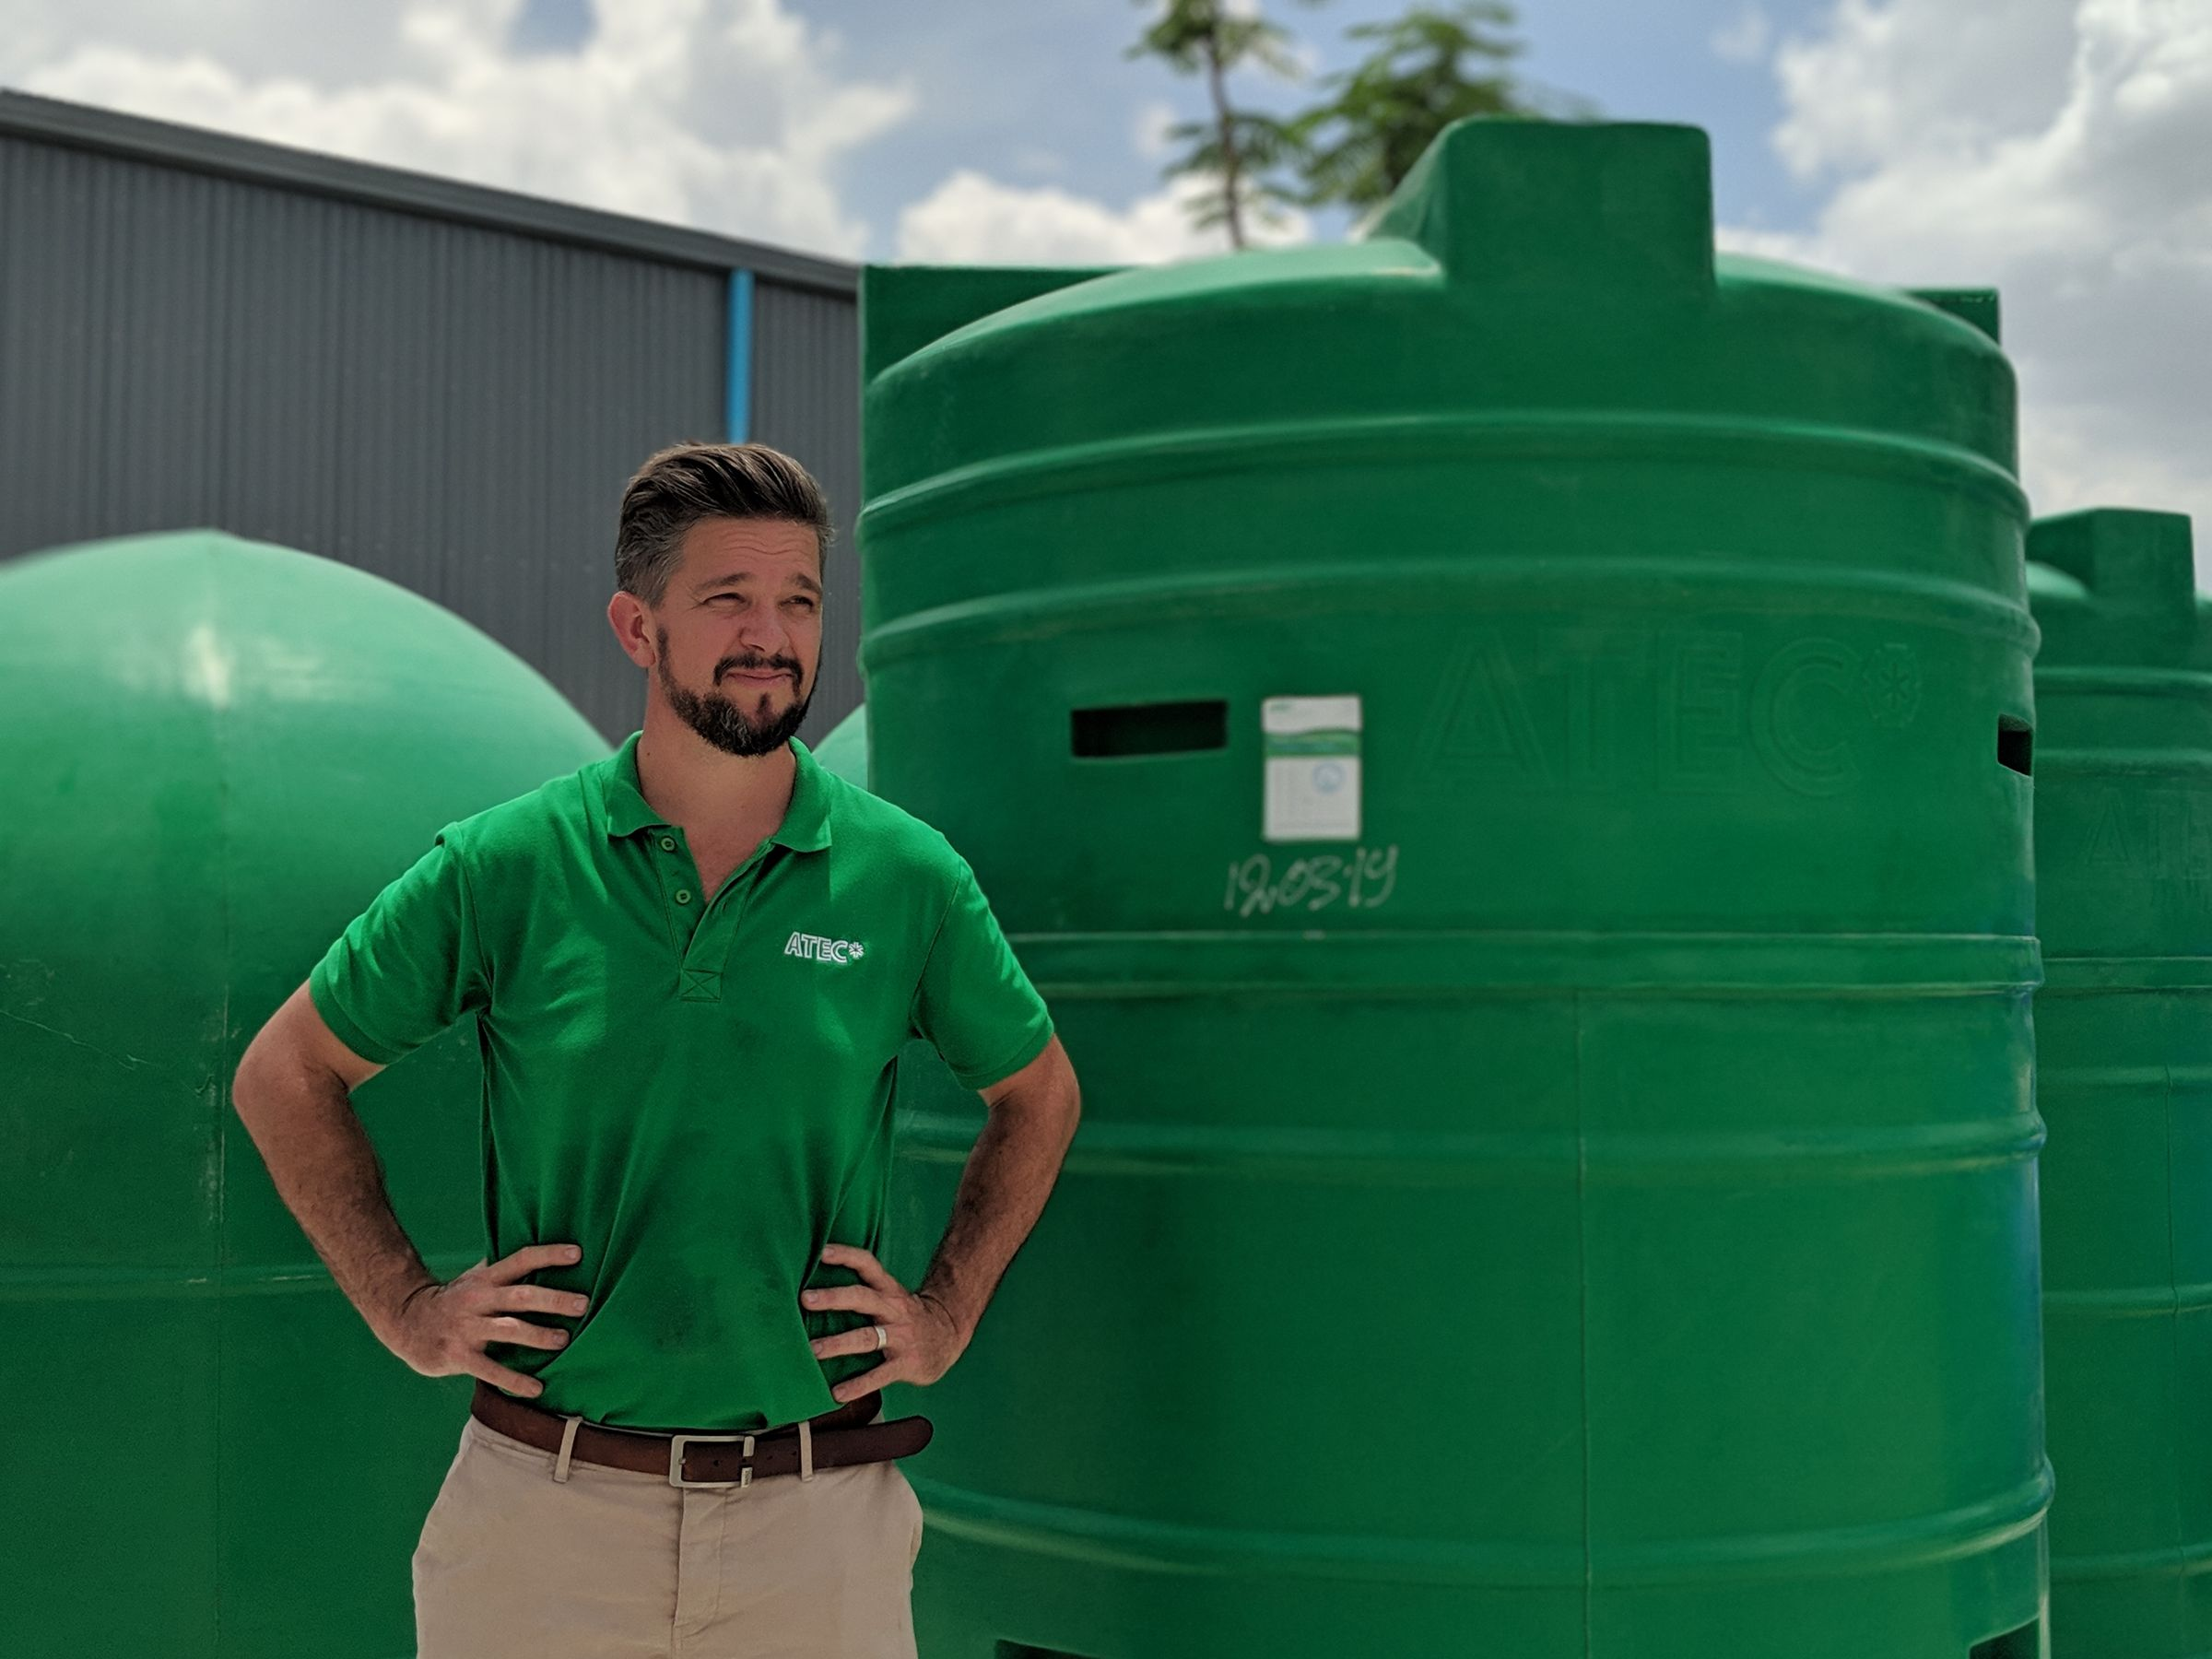 ATEC: Biogas for the planet